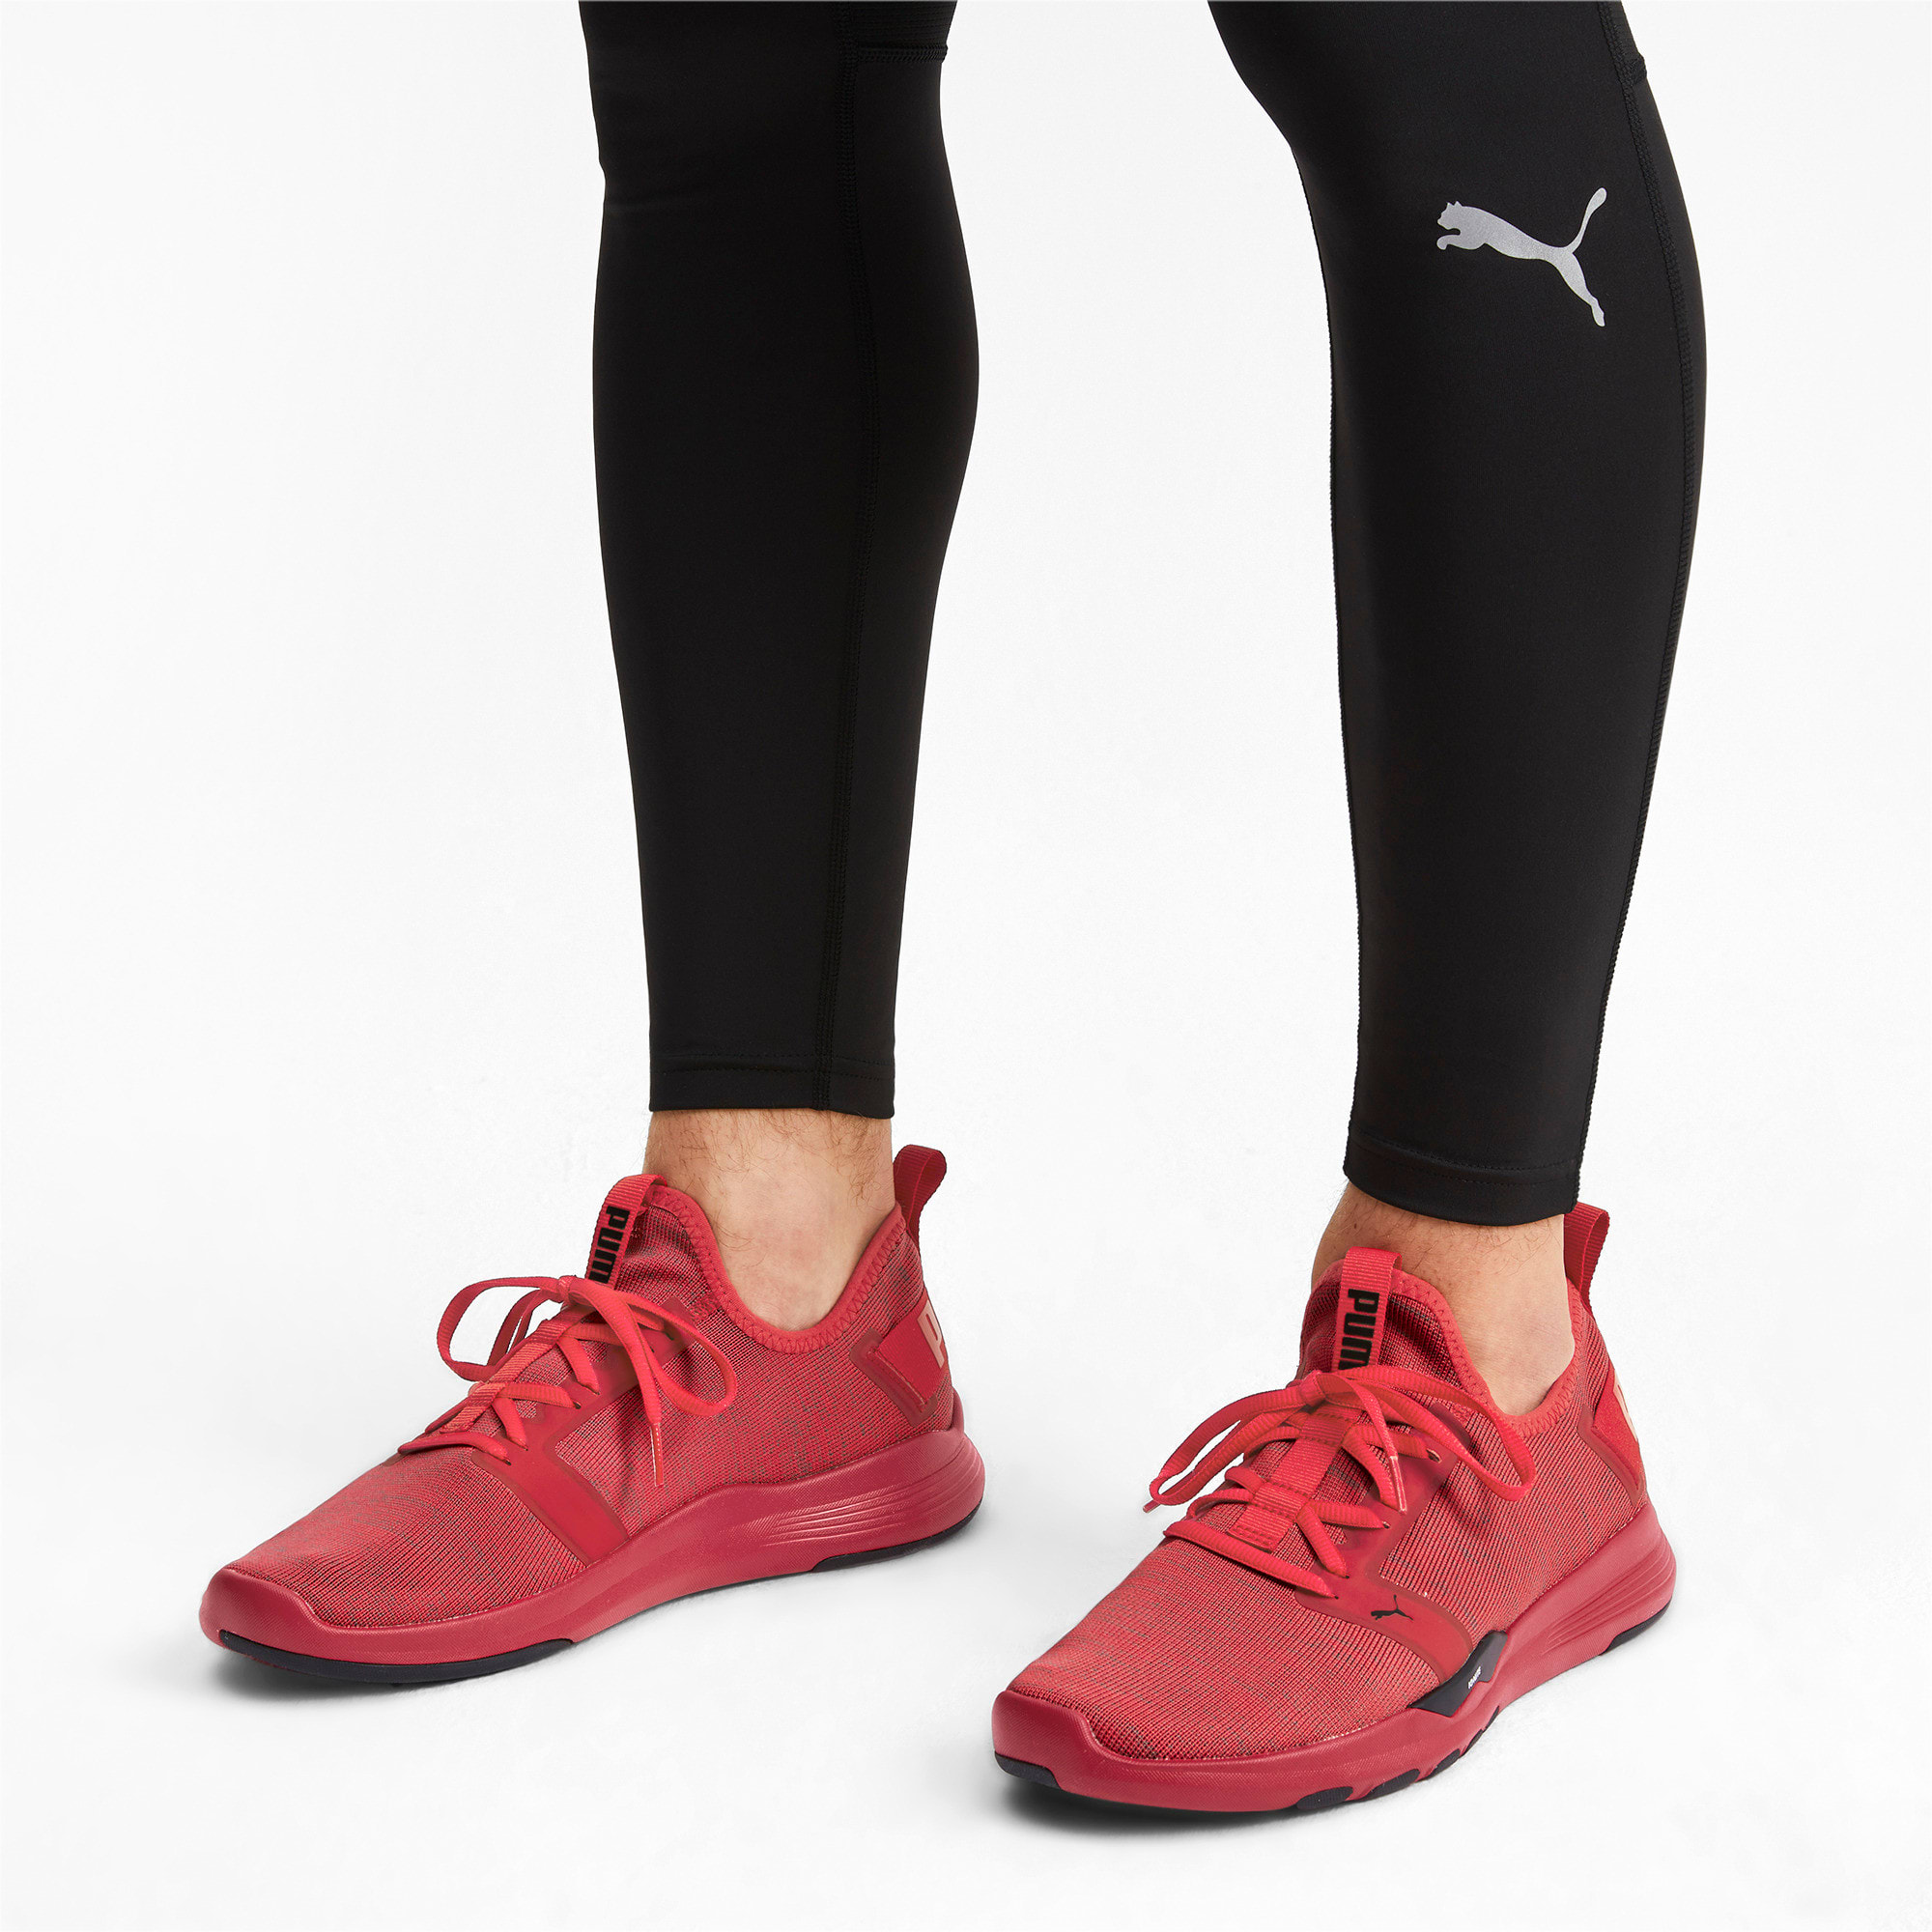 Thumbnail 3 of IGNITE Contender Knit Men's Running Shoes, Ribbon Red-Puma Black, medium-IND